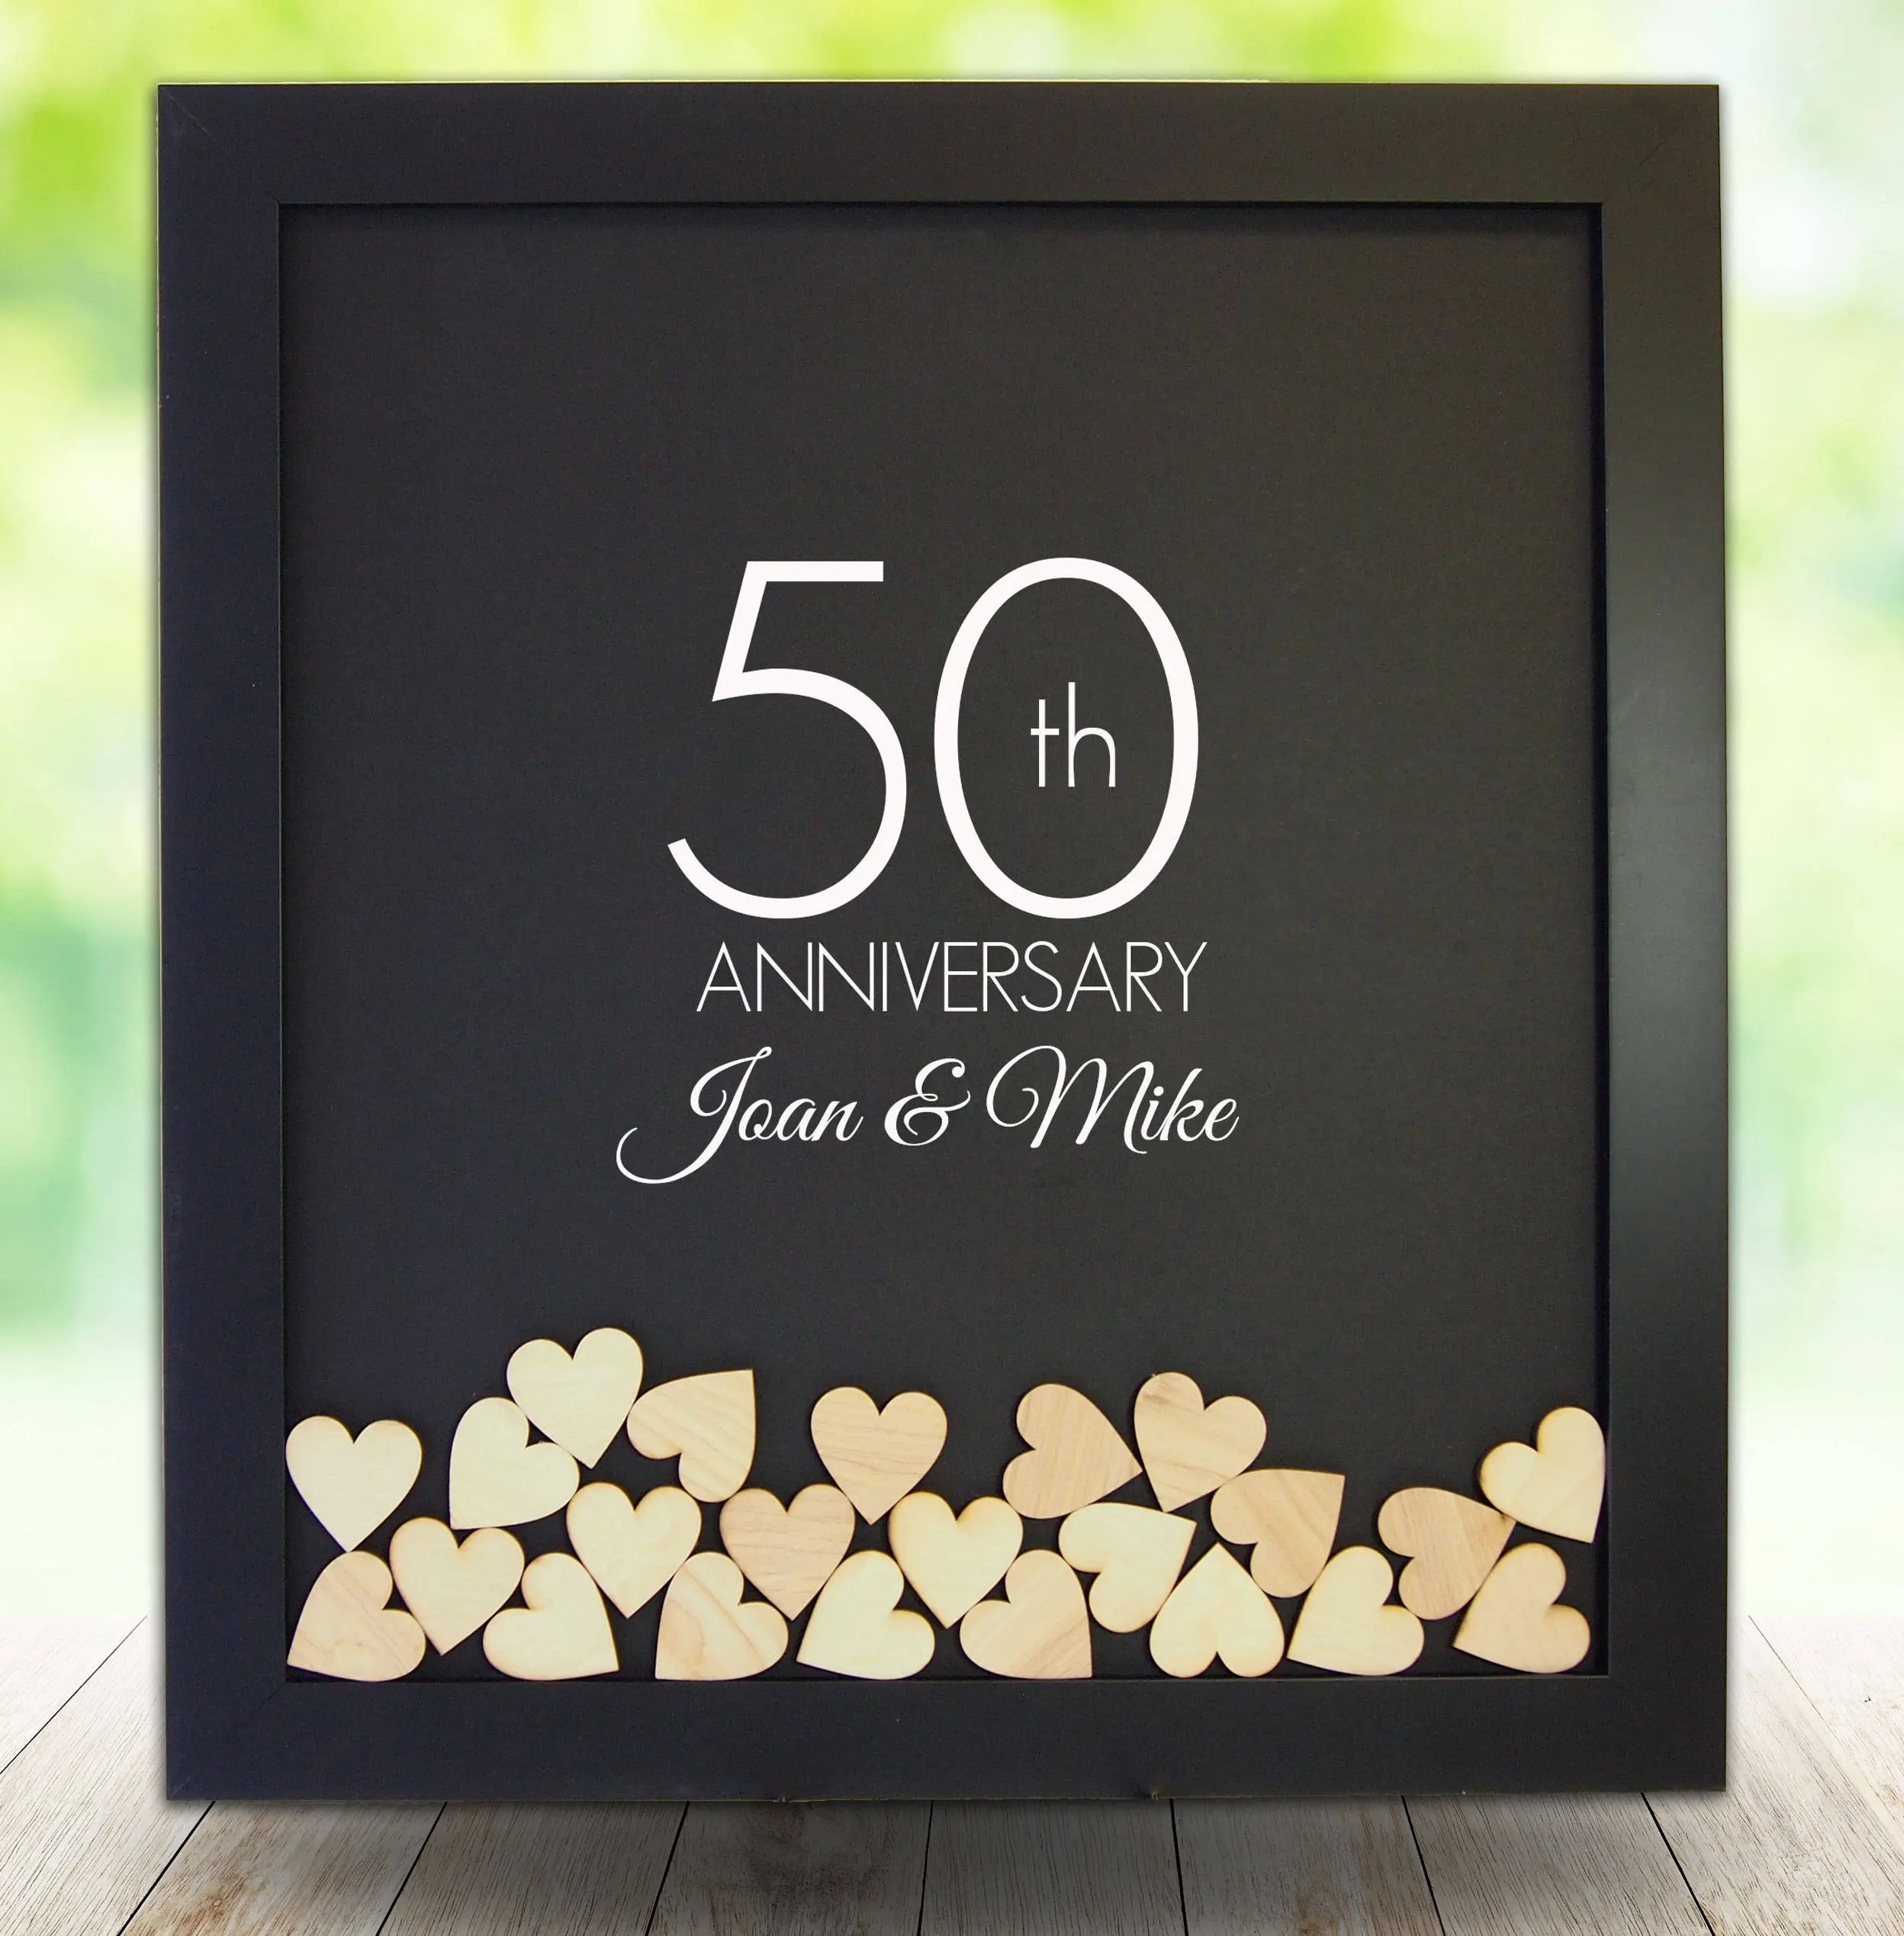 Fullsize Of 50th Anniversary Gift